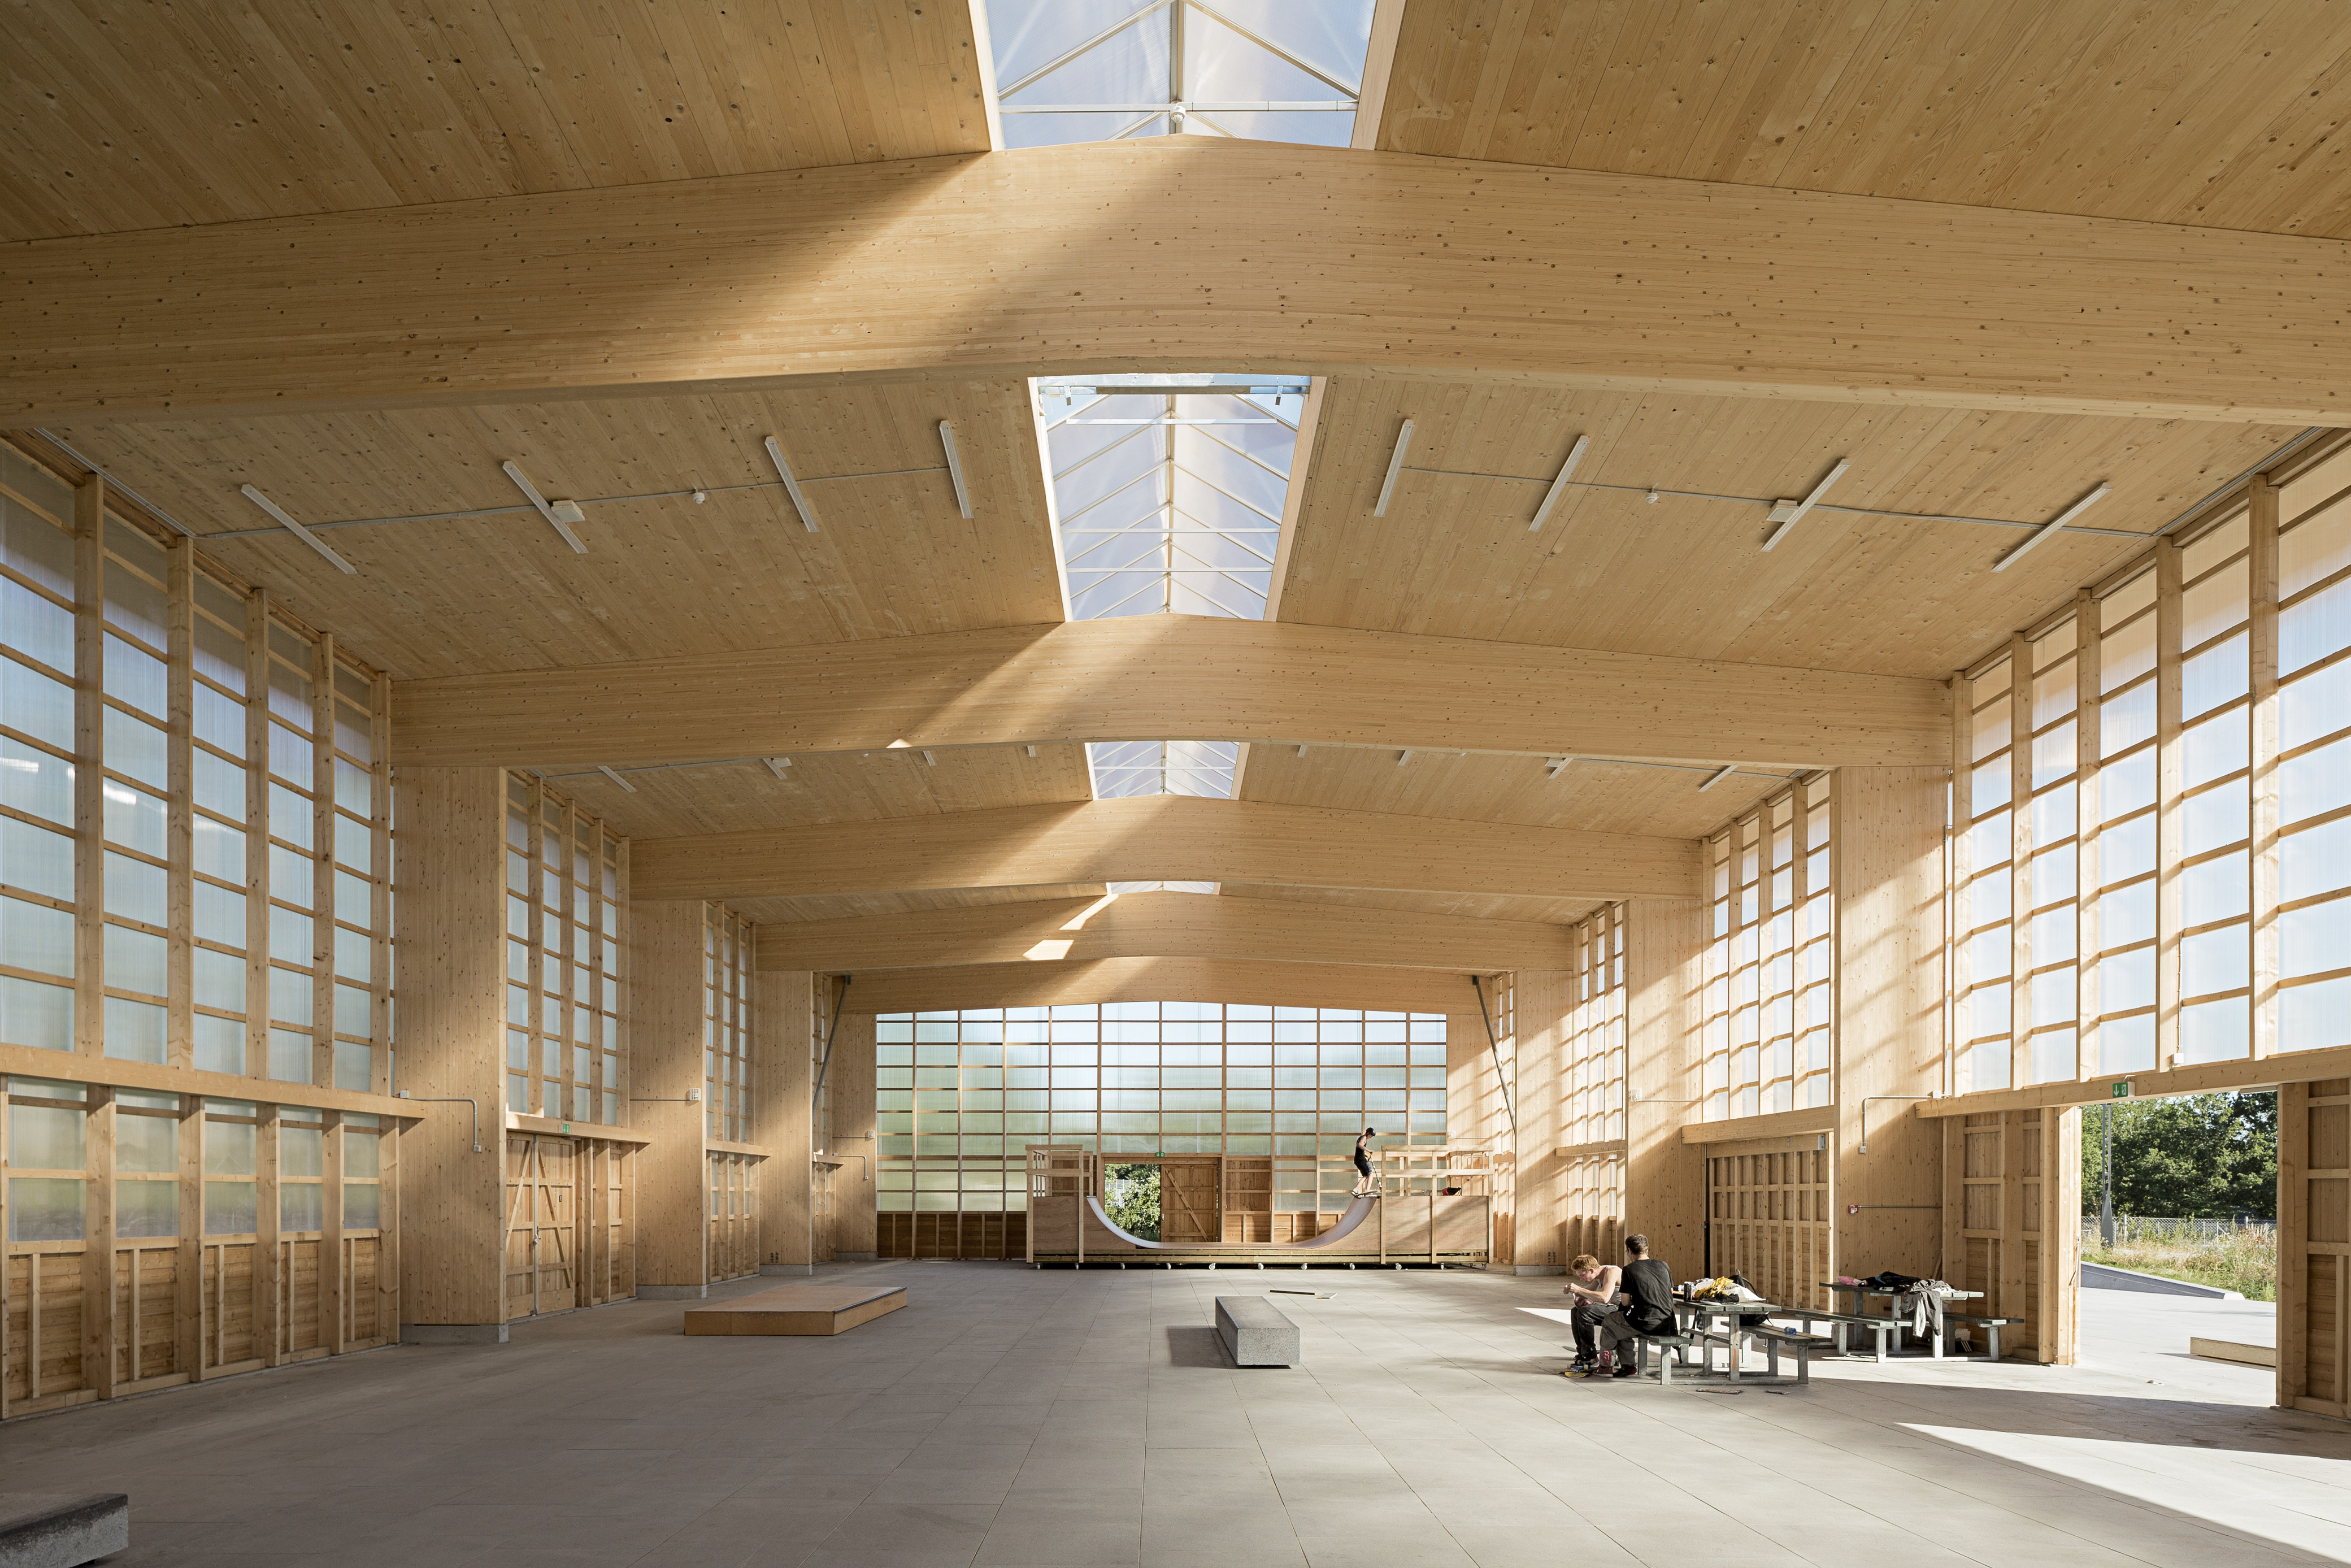 Photo of Gymnasium for street sports by Vandkunsten Architects. Photo credit: Mads Frederik.